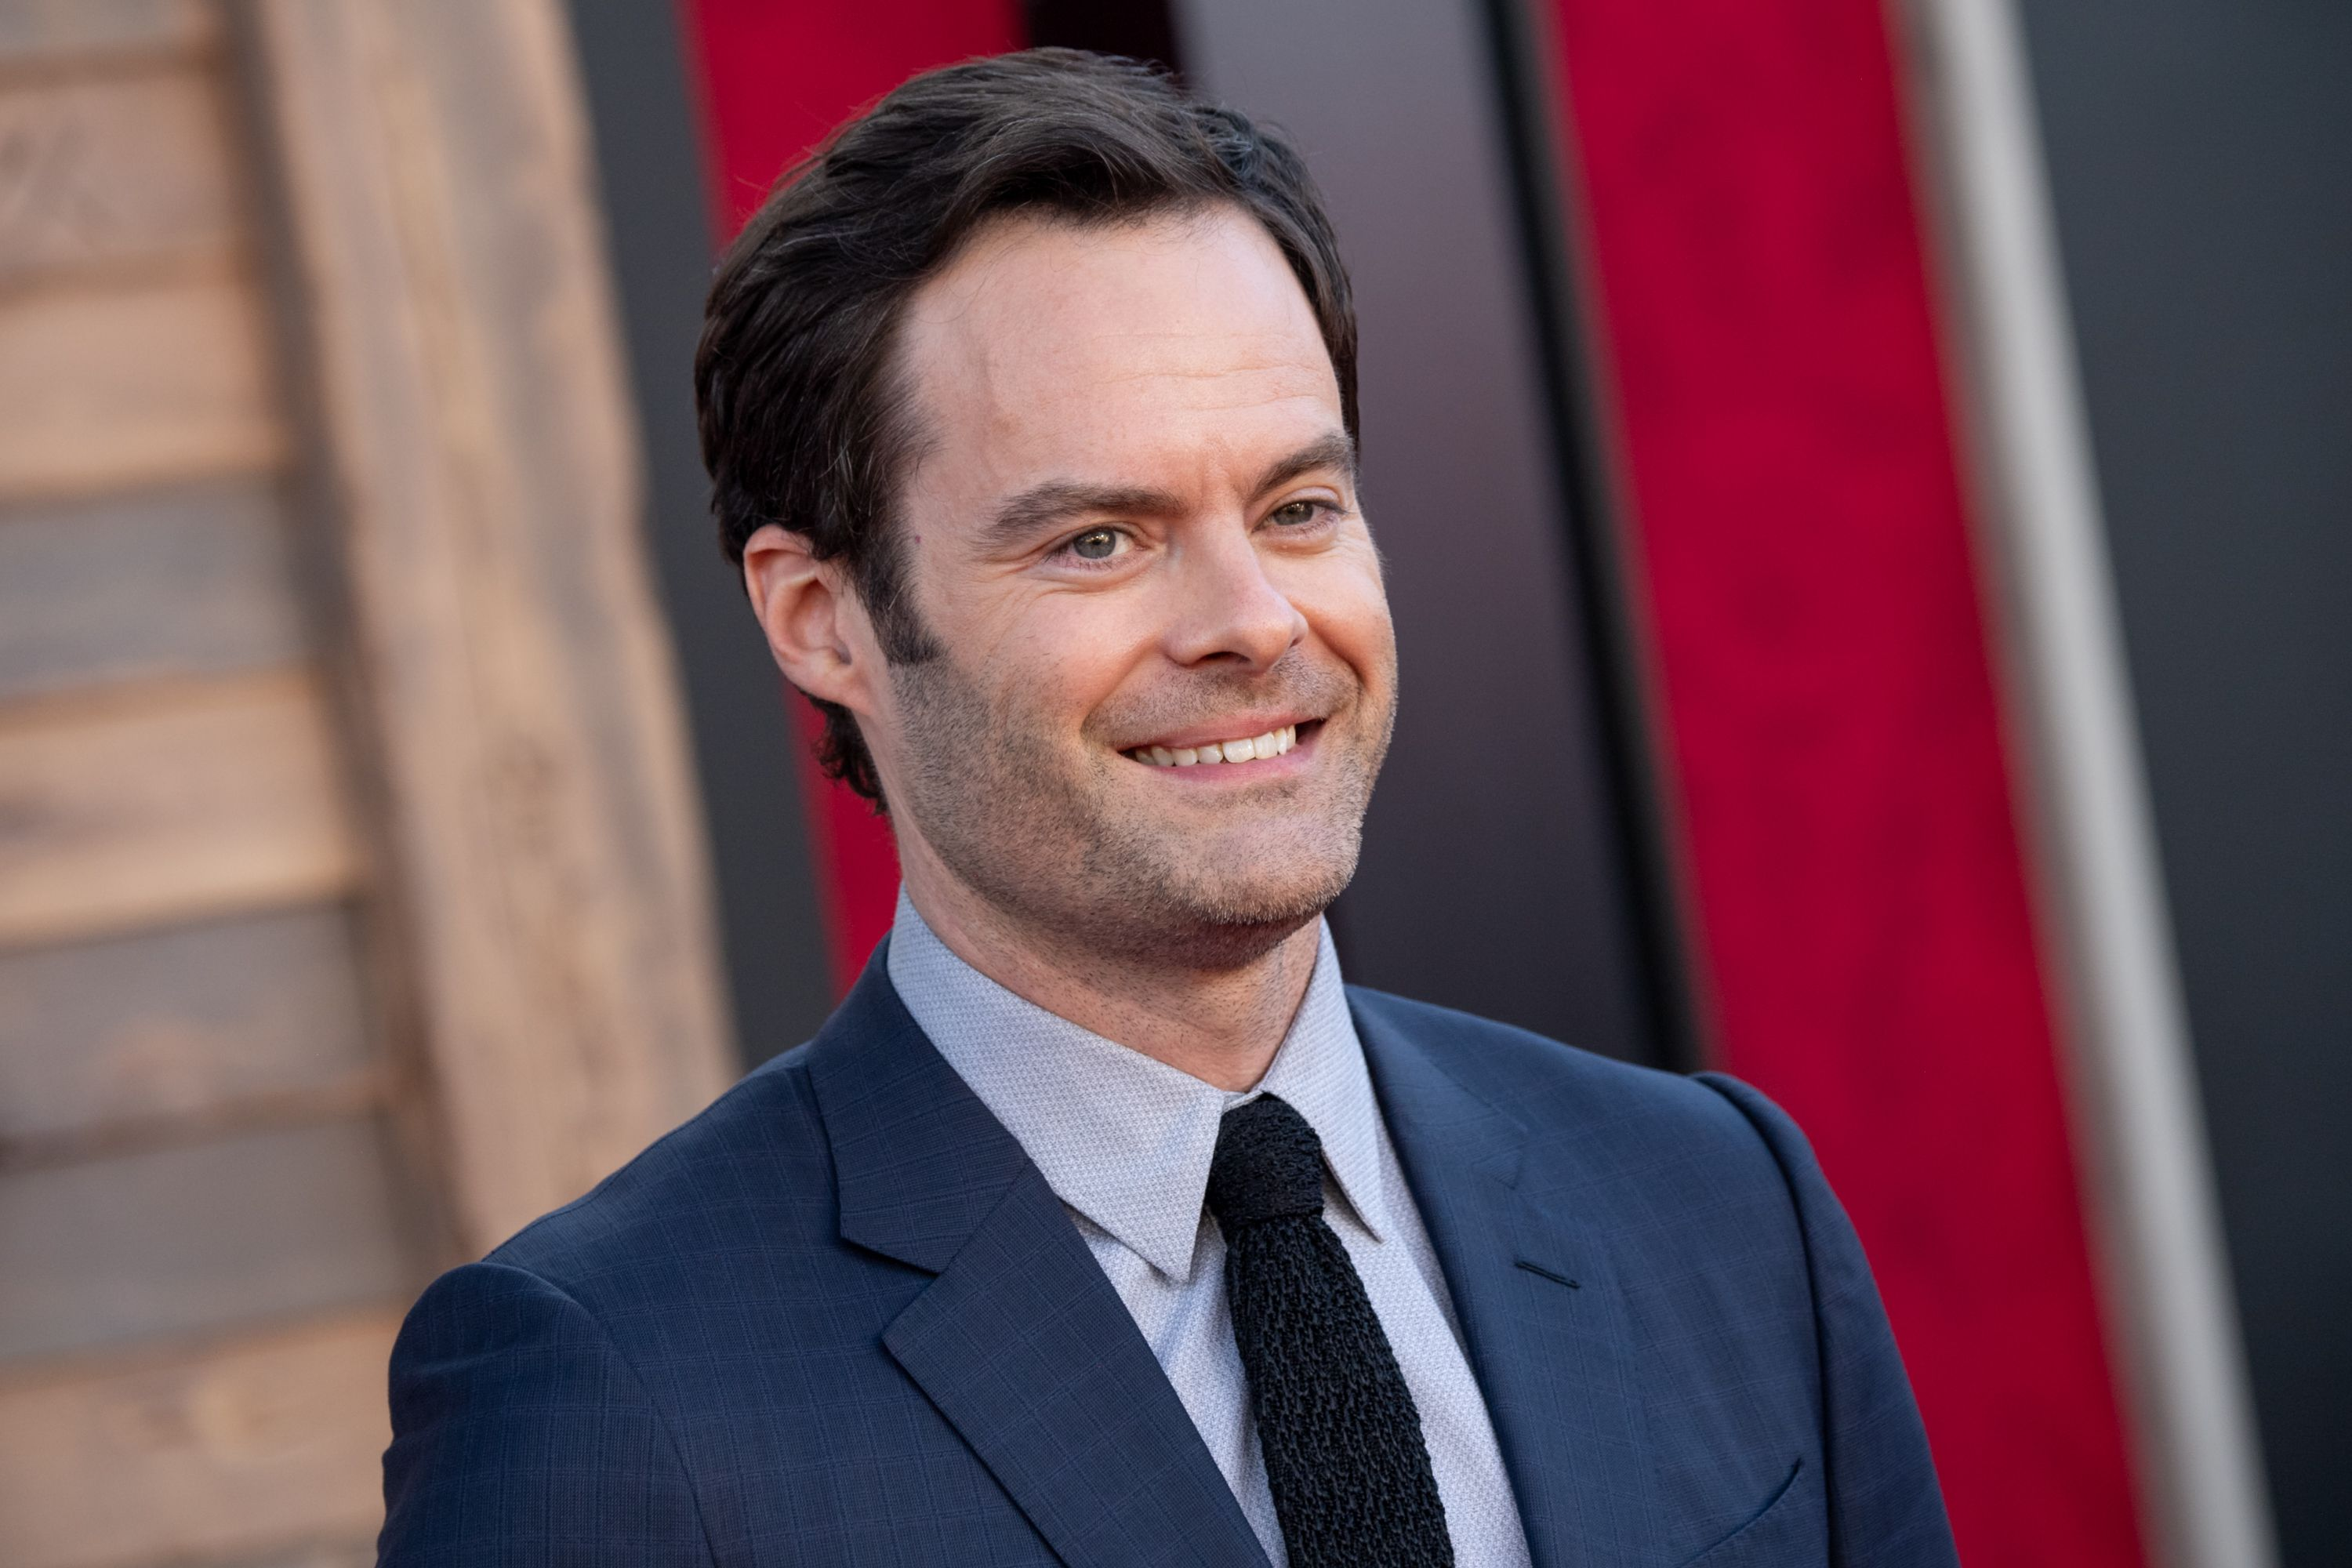 Bill Hader Shares the Advice for Managing Anxiety That Has 'Really Helped' Him